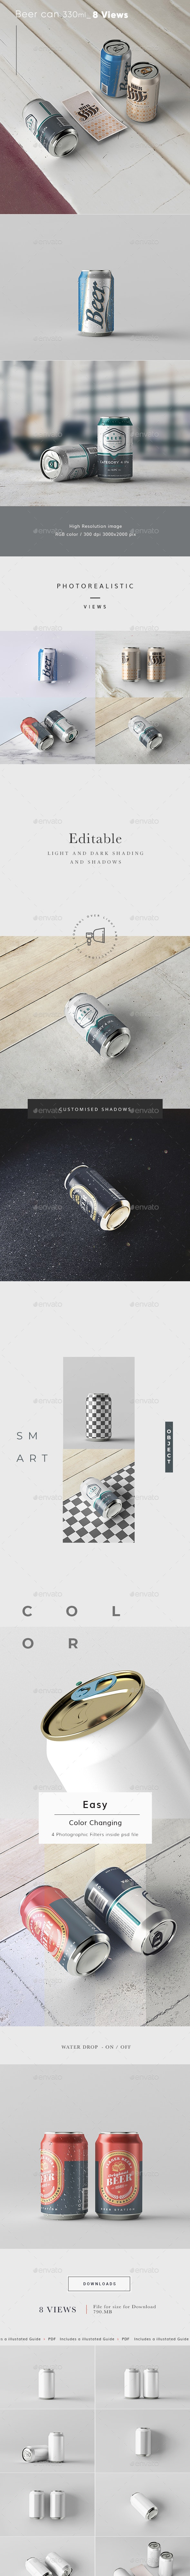 Beer Can 330 ml  Mock-up - Food and Drink Packaging